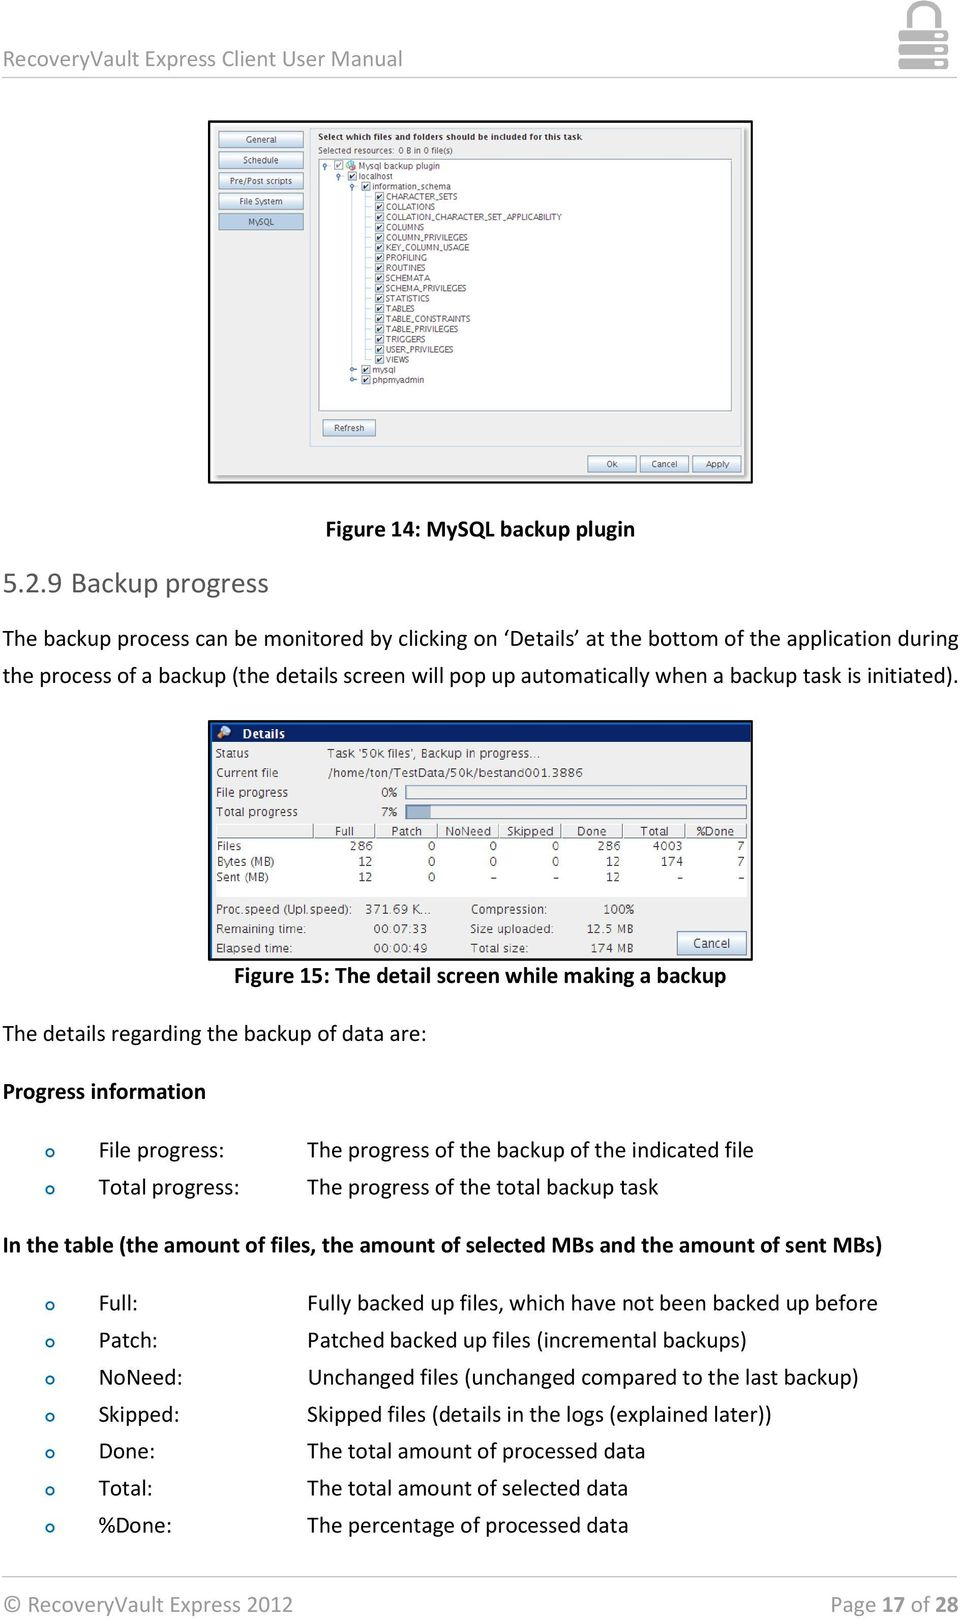 Figure 15: The detail screen while making a backup The details regarding the backup of data are: Progress information File progress: The progress of the backup of the indicated file Total progress: